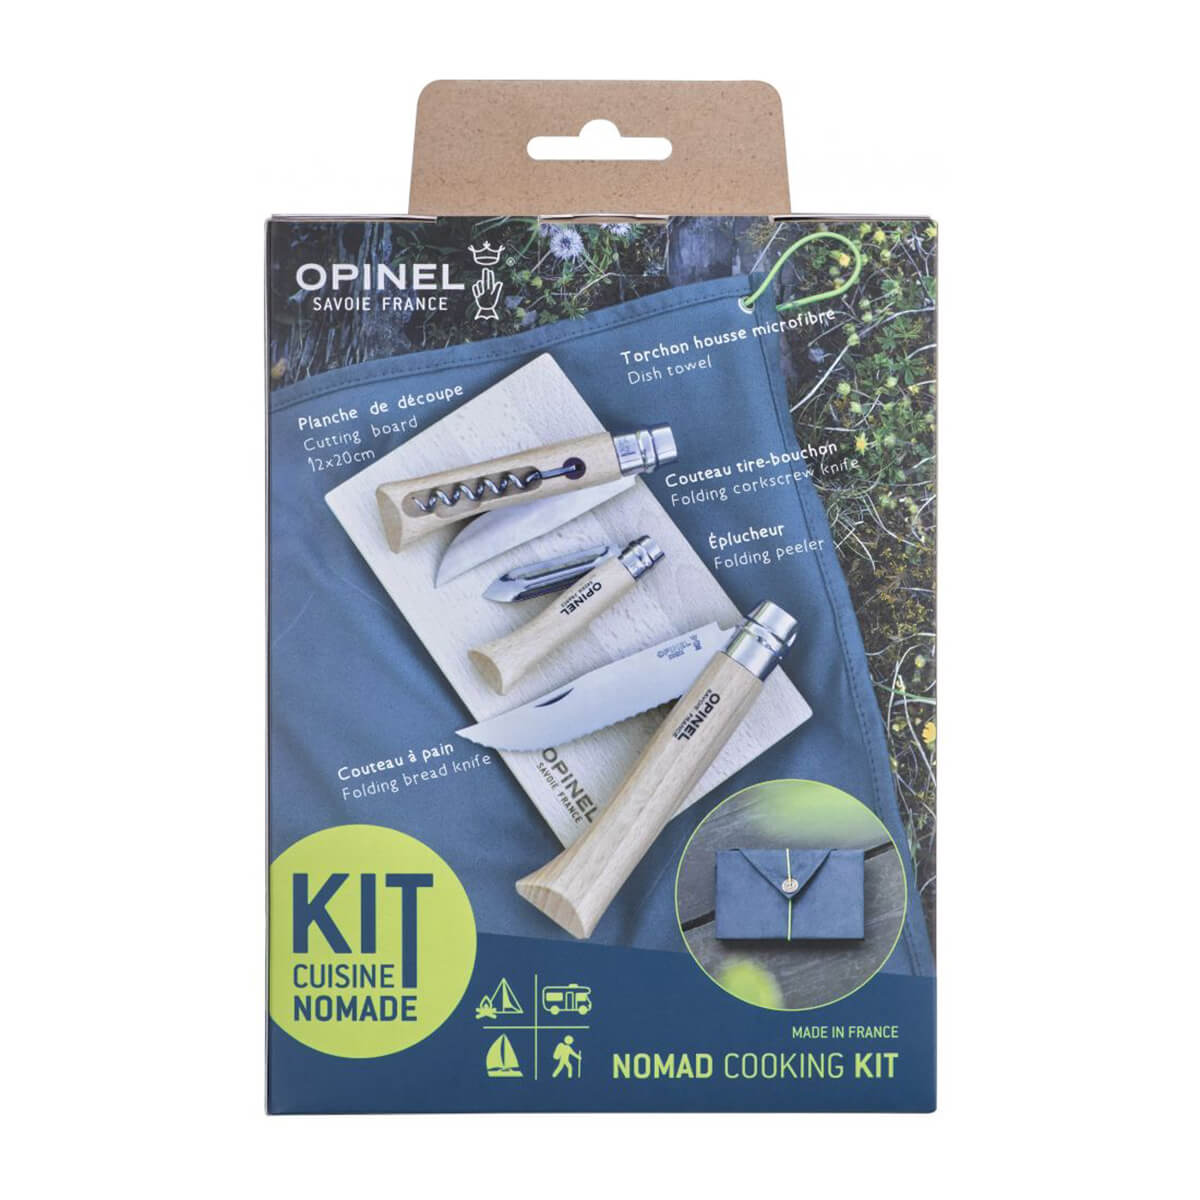 Kit de Cuisine Nomade by OPINEL